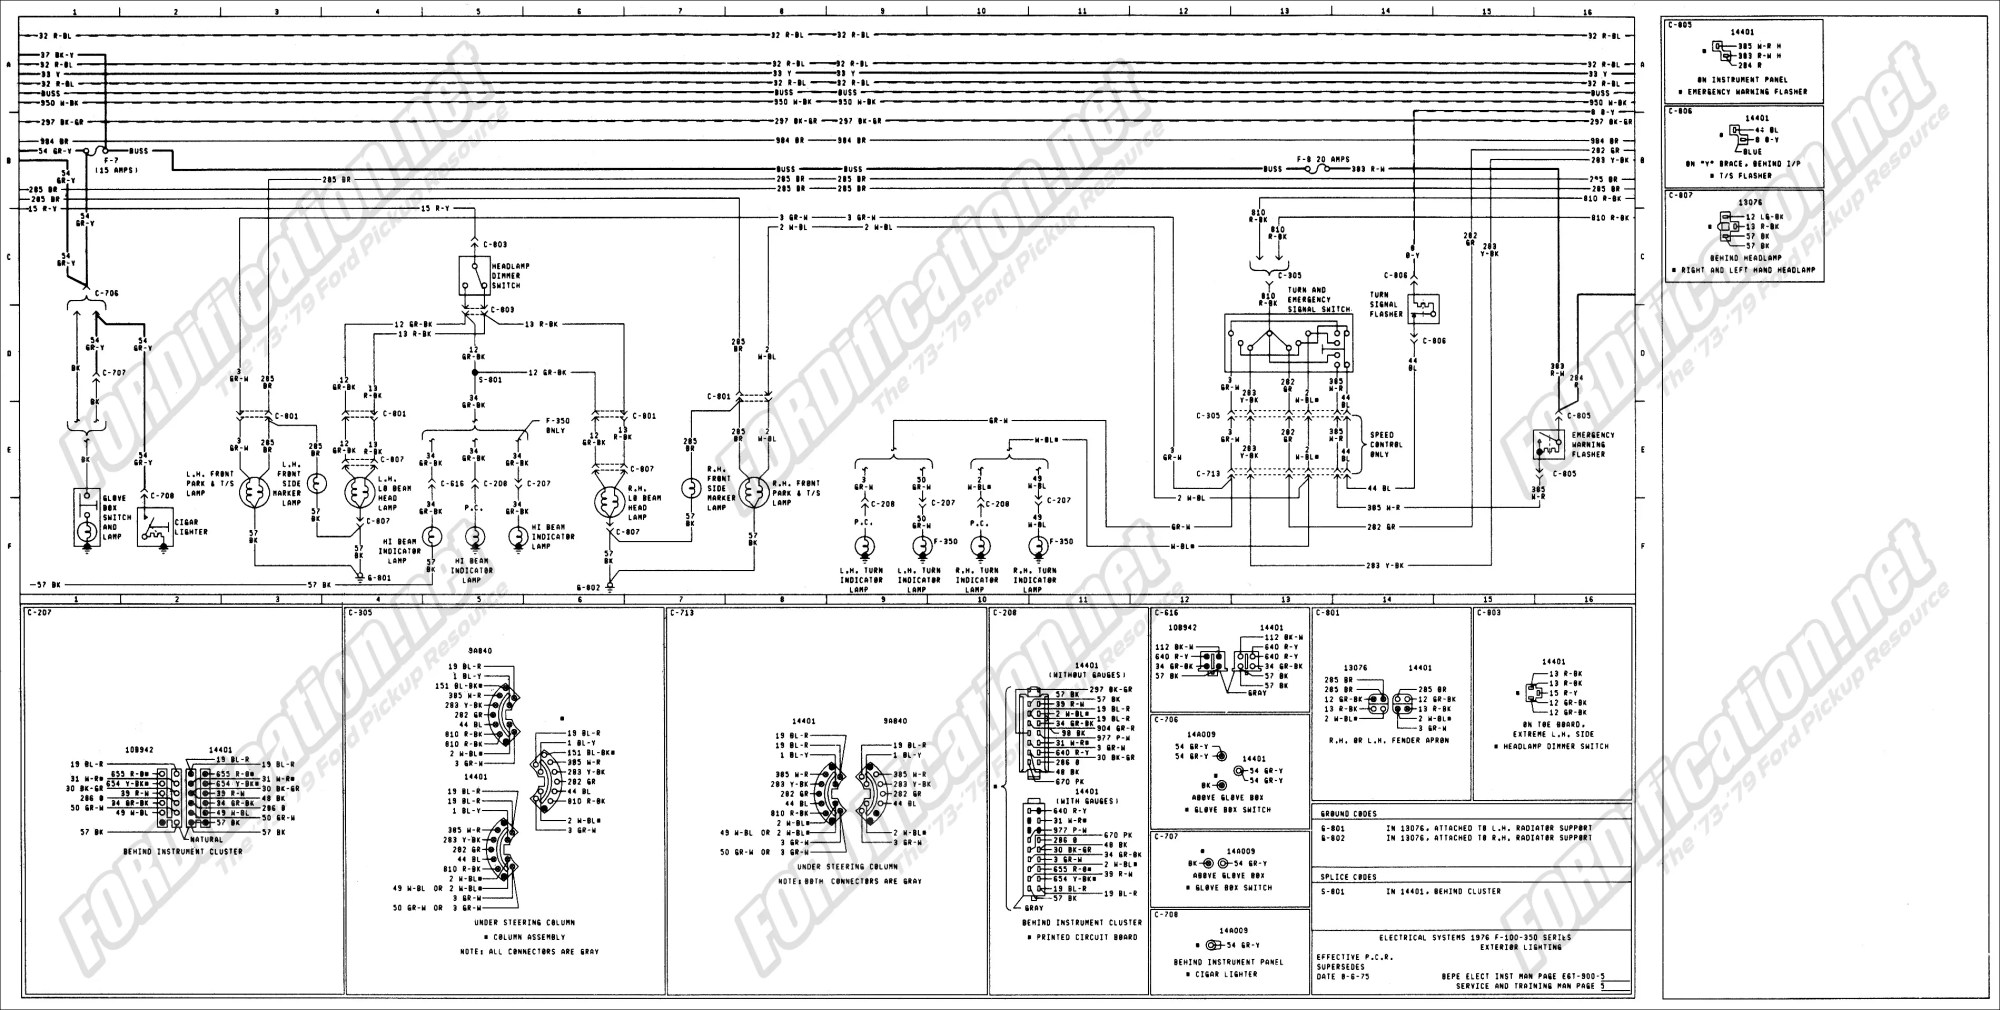 hight resolution of 1977 f250 wiring diagram wiring diagram query 1977 ford f250 fuel gauge wiring diagram 1977 ford f250 wiring diagram